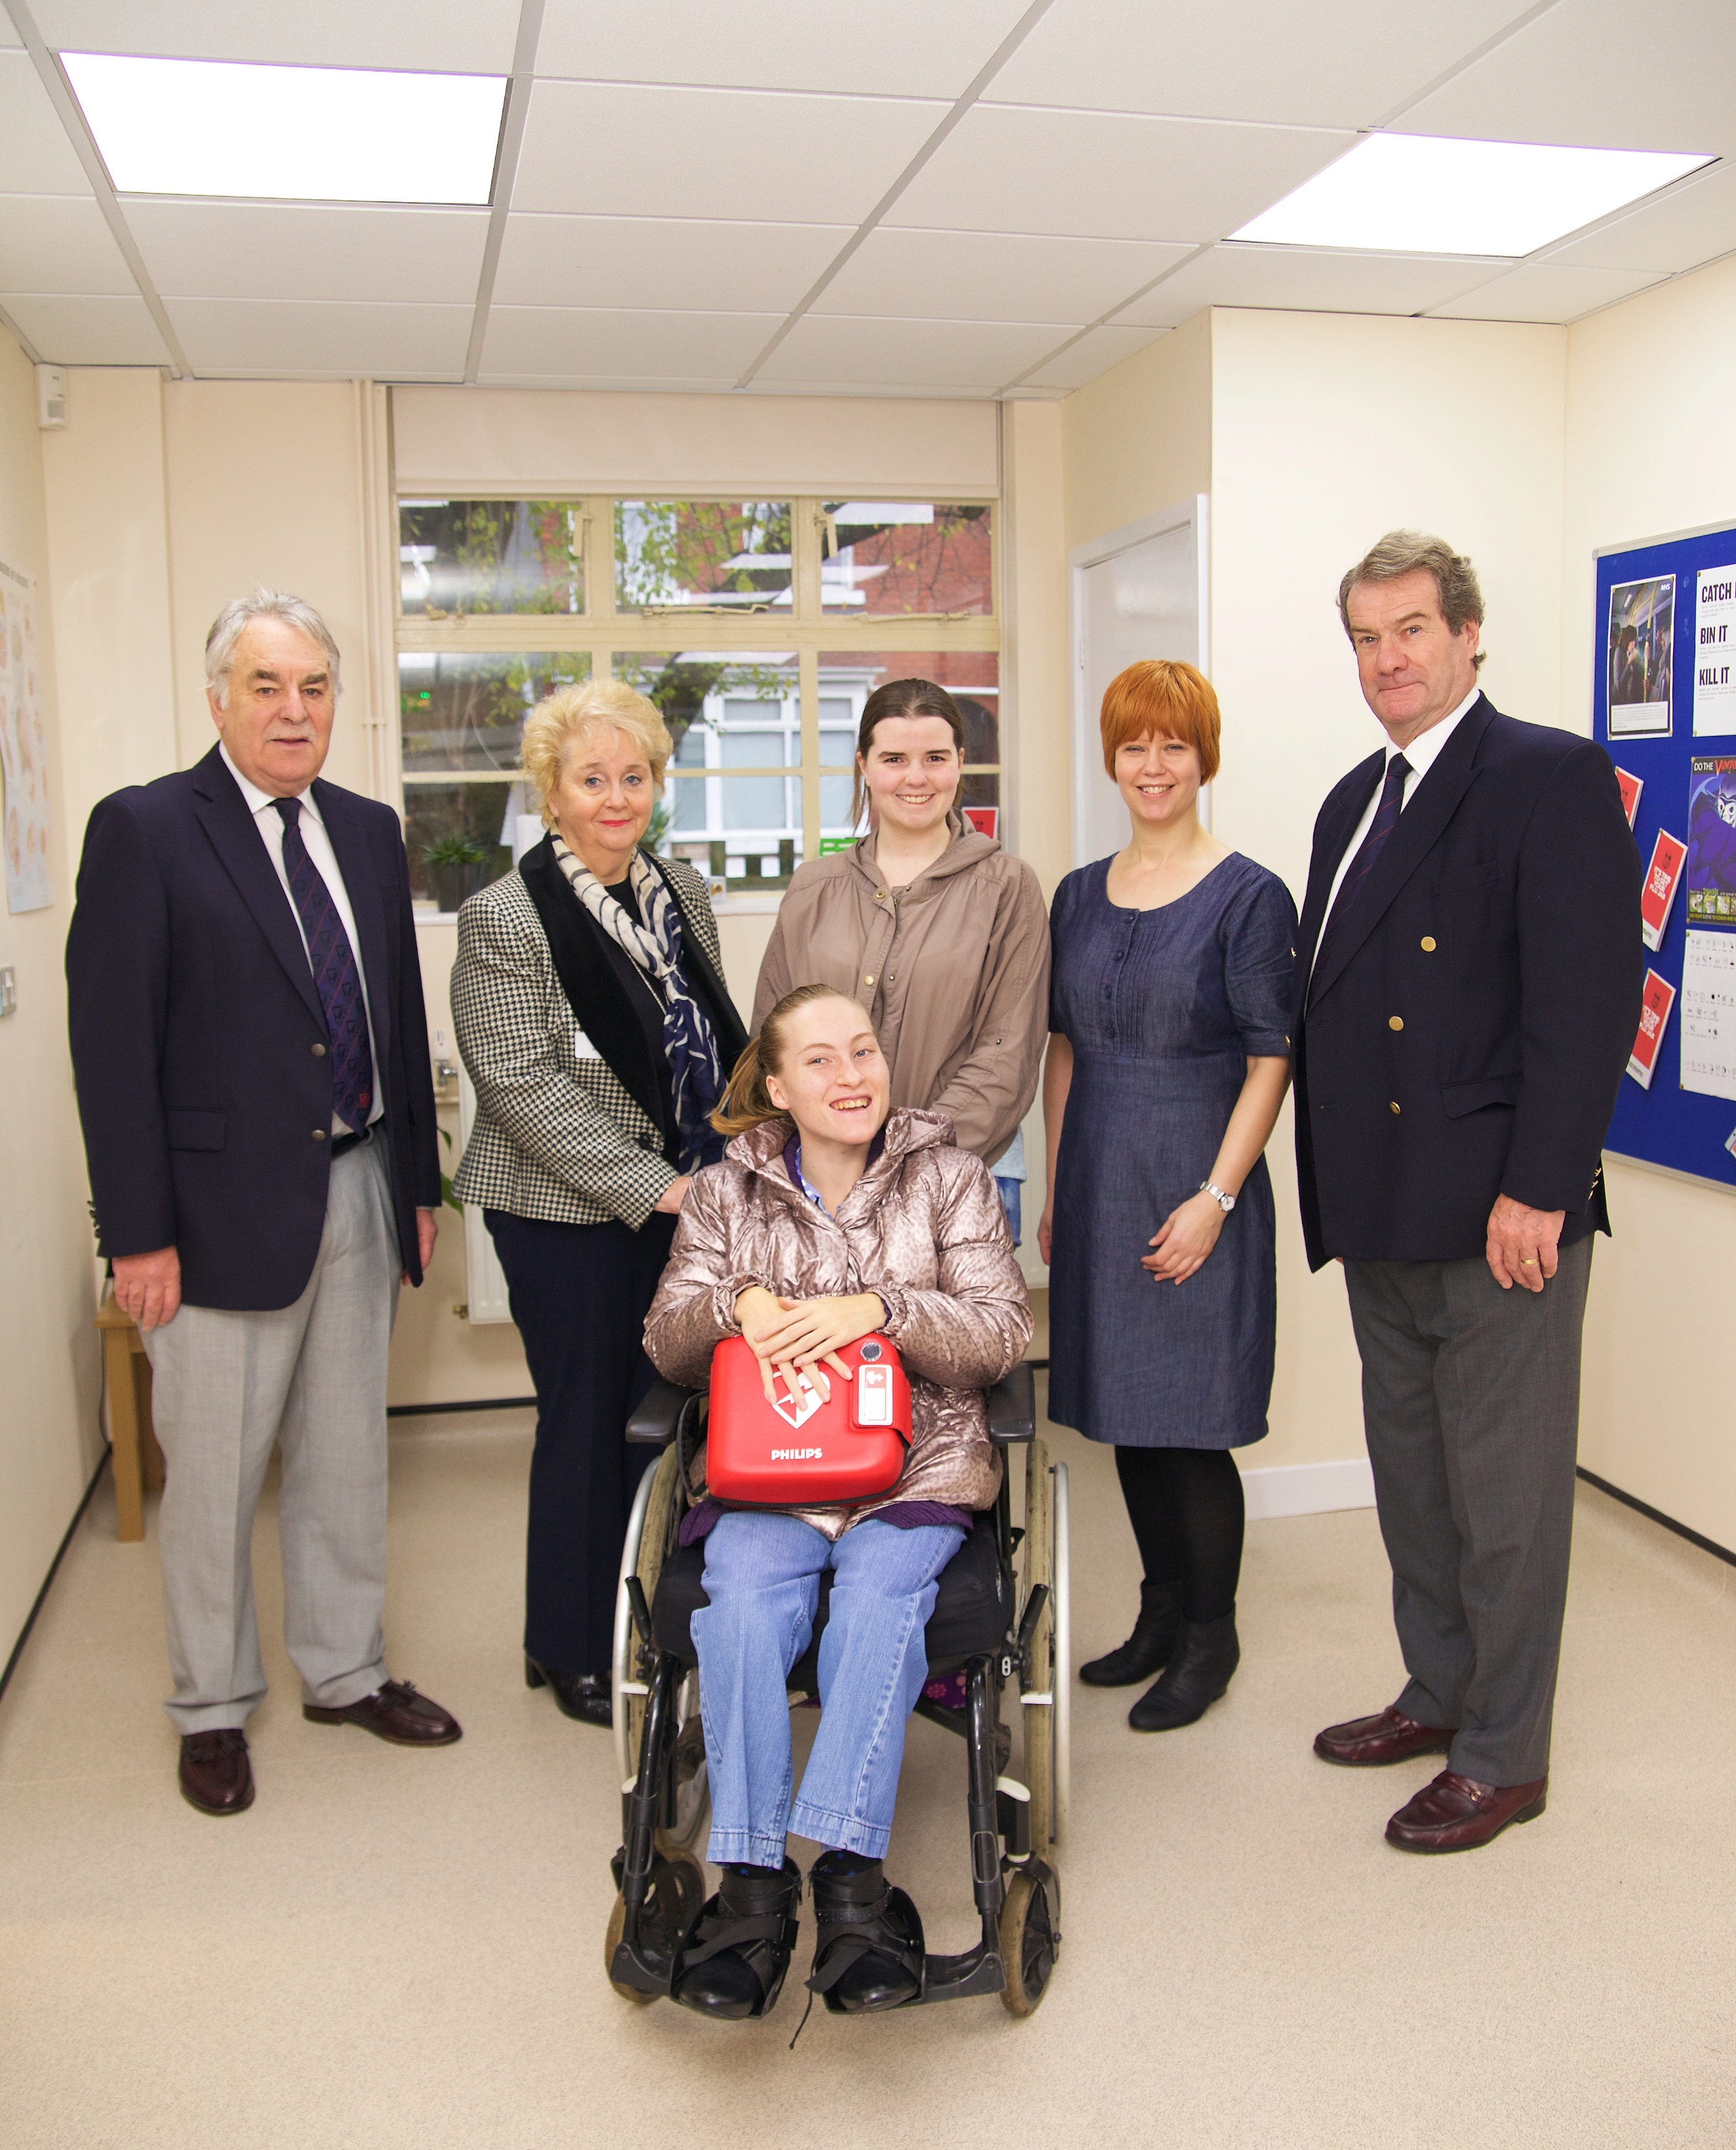 HOEA donates defibrillator to staff and students at QAC